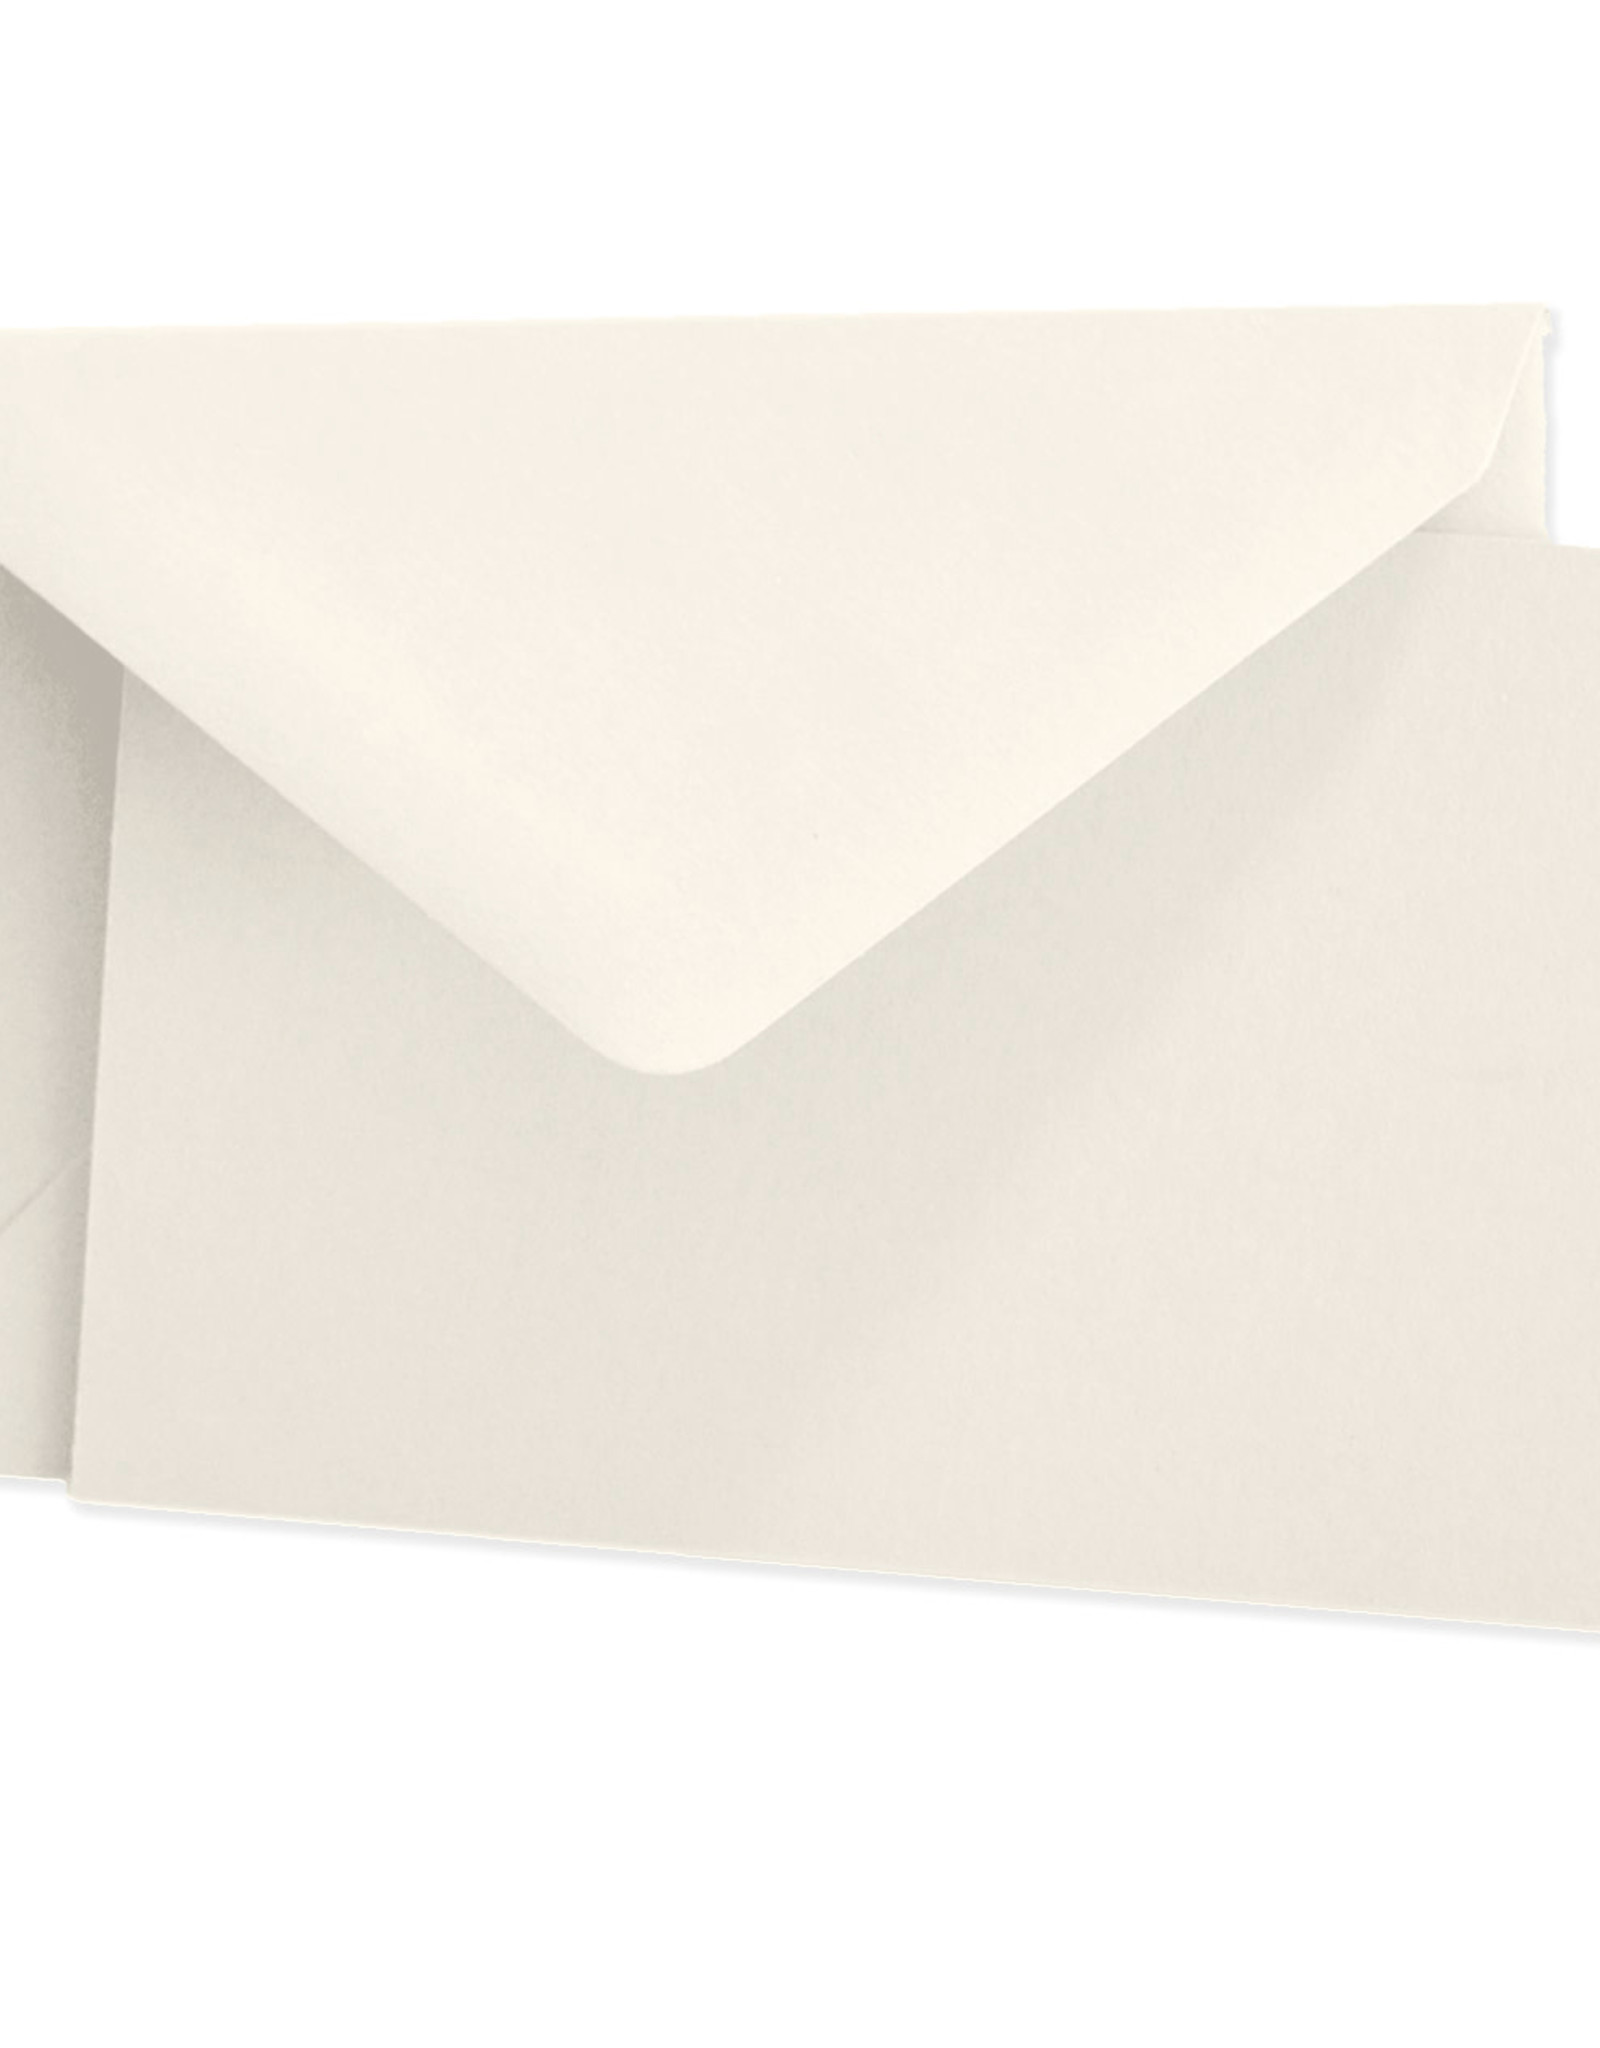 Original Crown Mill Color Vellum Note Card Stationery